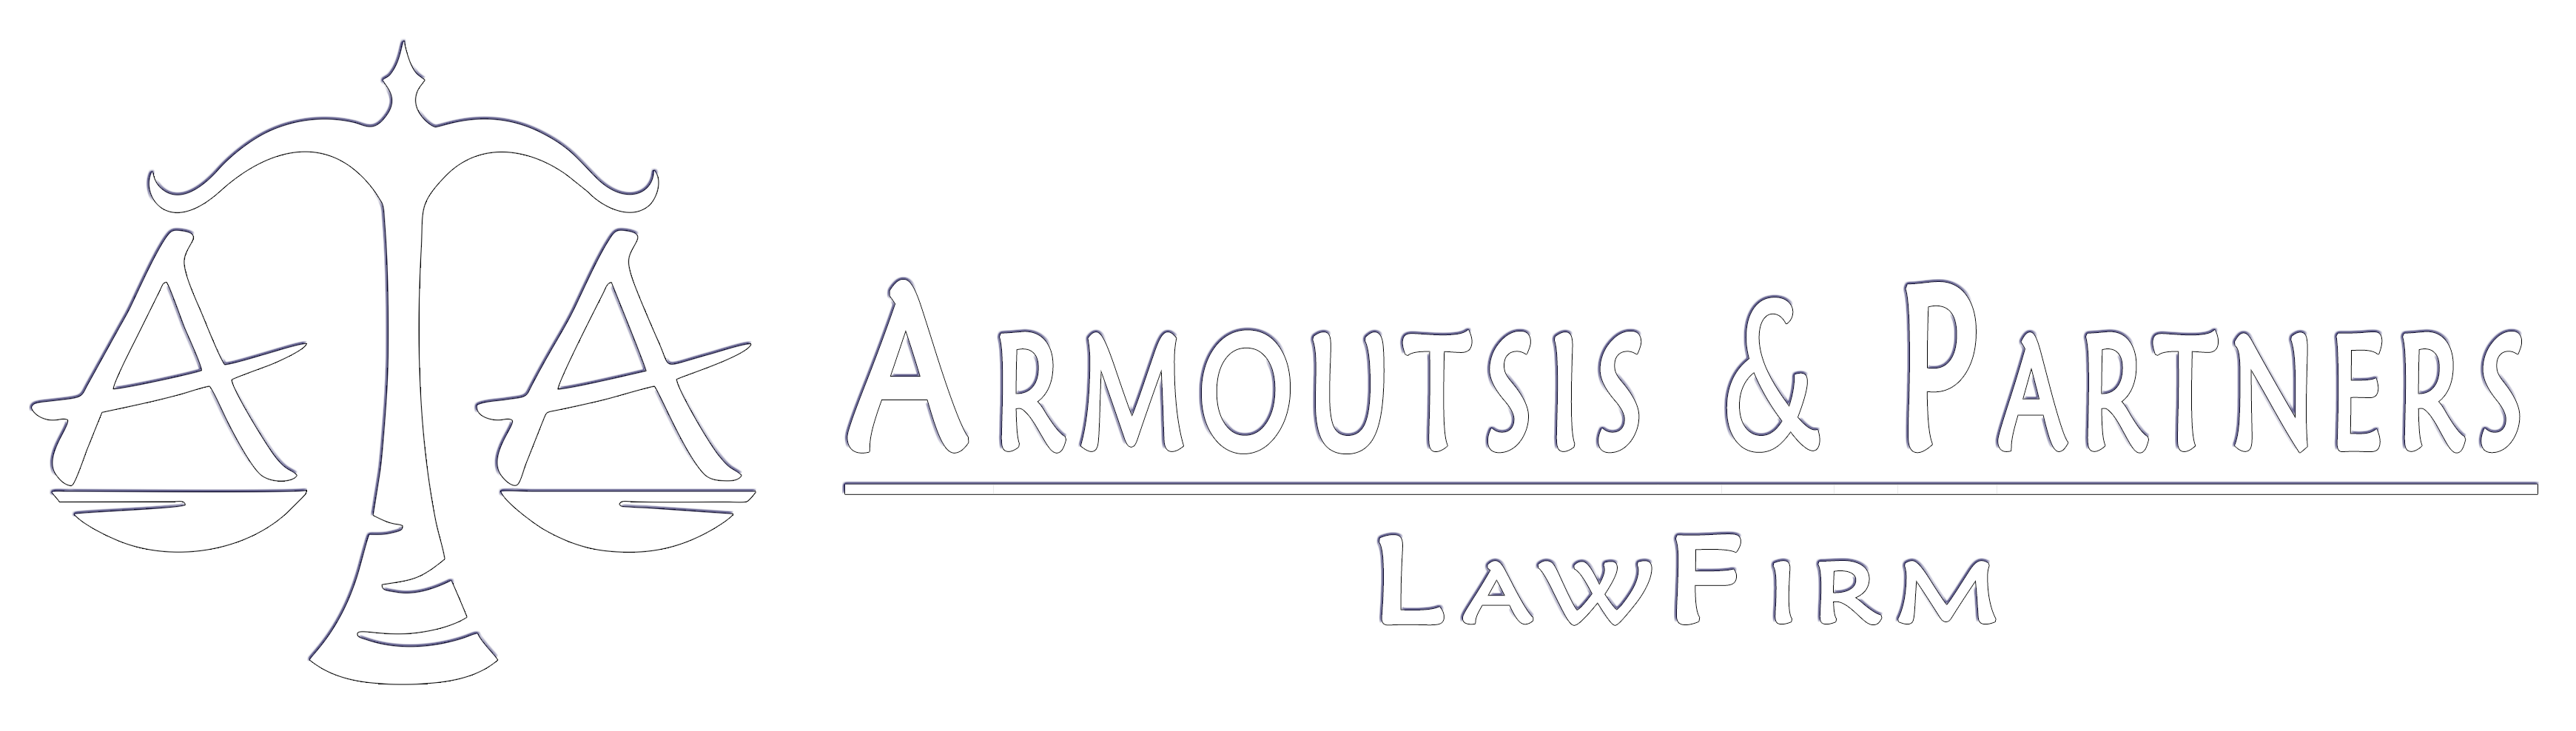 Armoutsis & Partners LawFirm